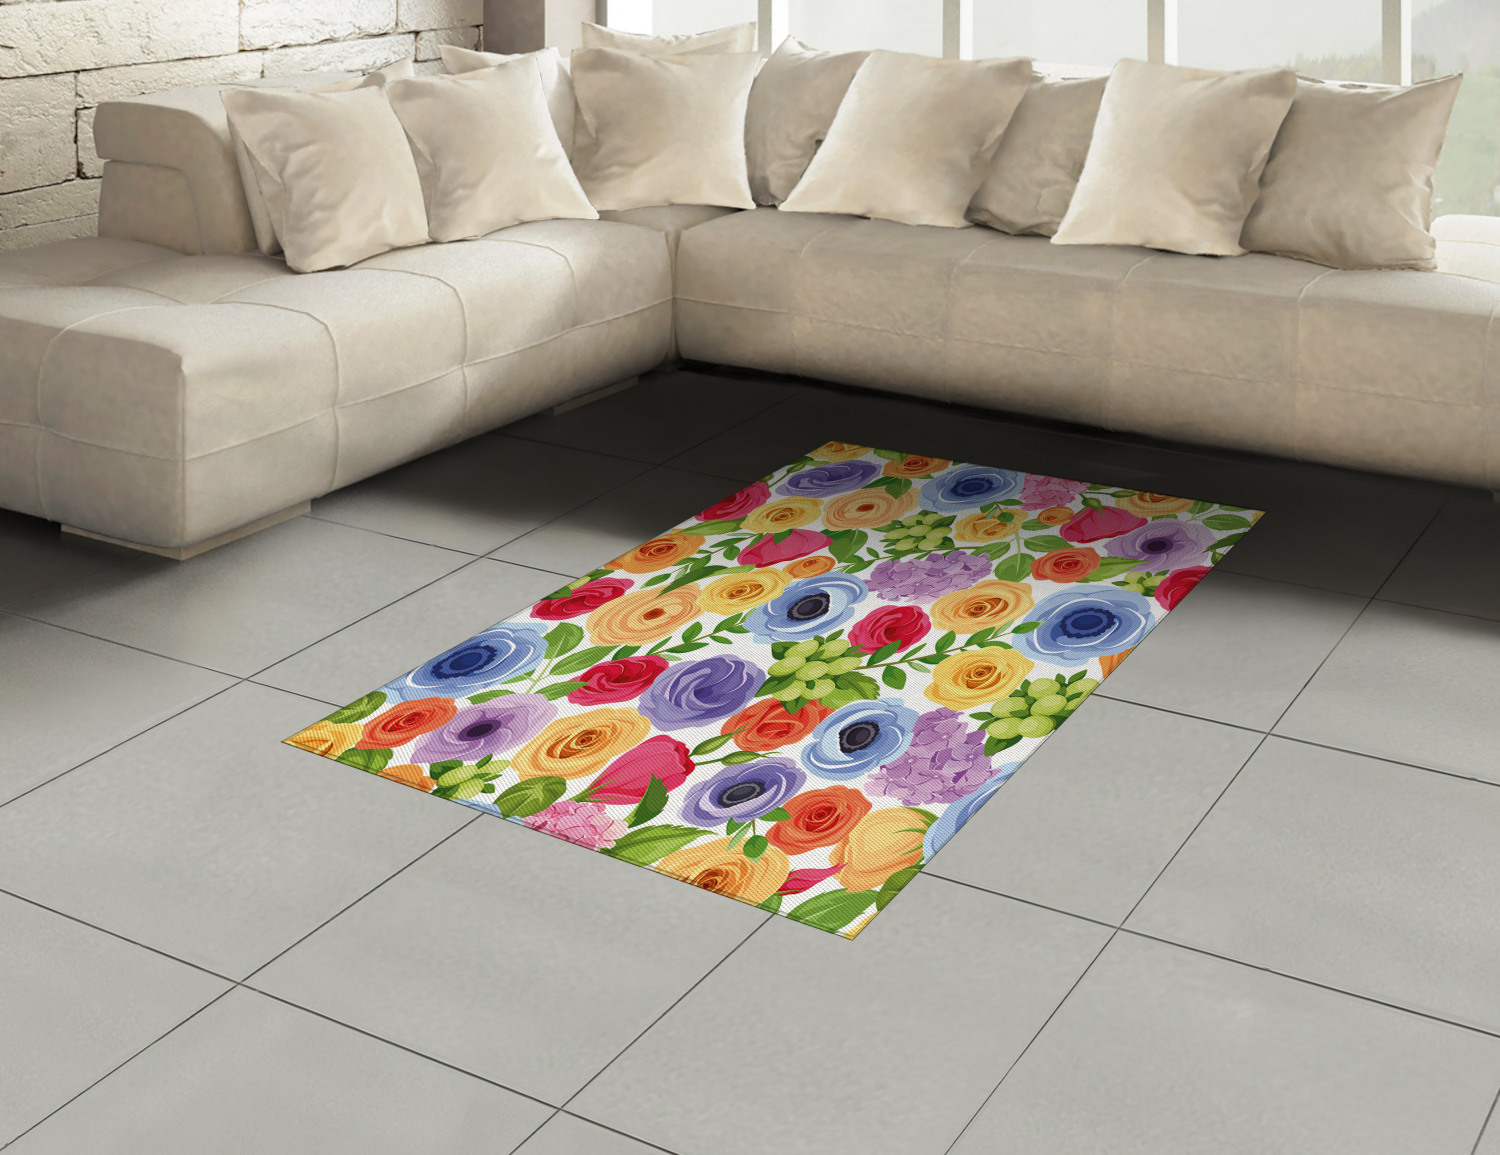 Anemone-Flower-Area-Rug-Decor-Flat-Woven-Accent-Rug-Home-Decor-2-Sizes-Ambesonne thumbnail 32